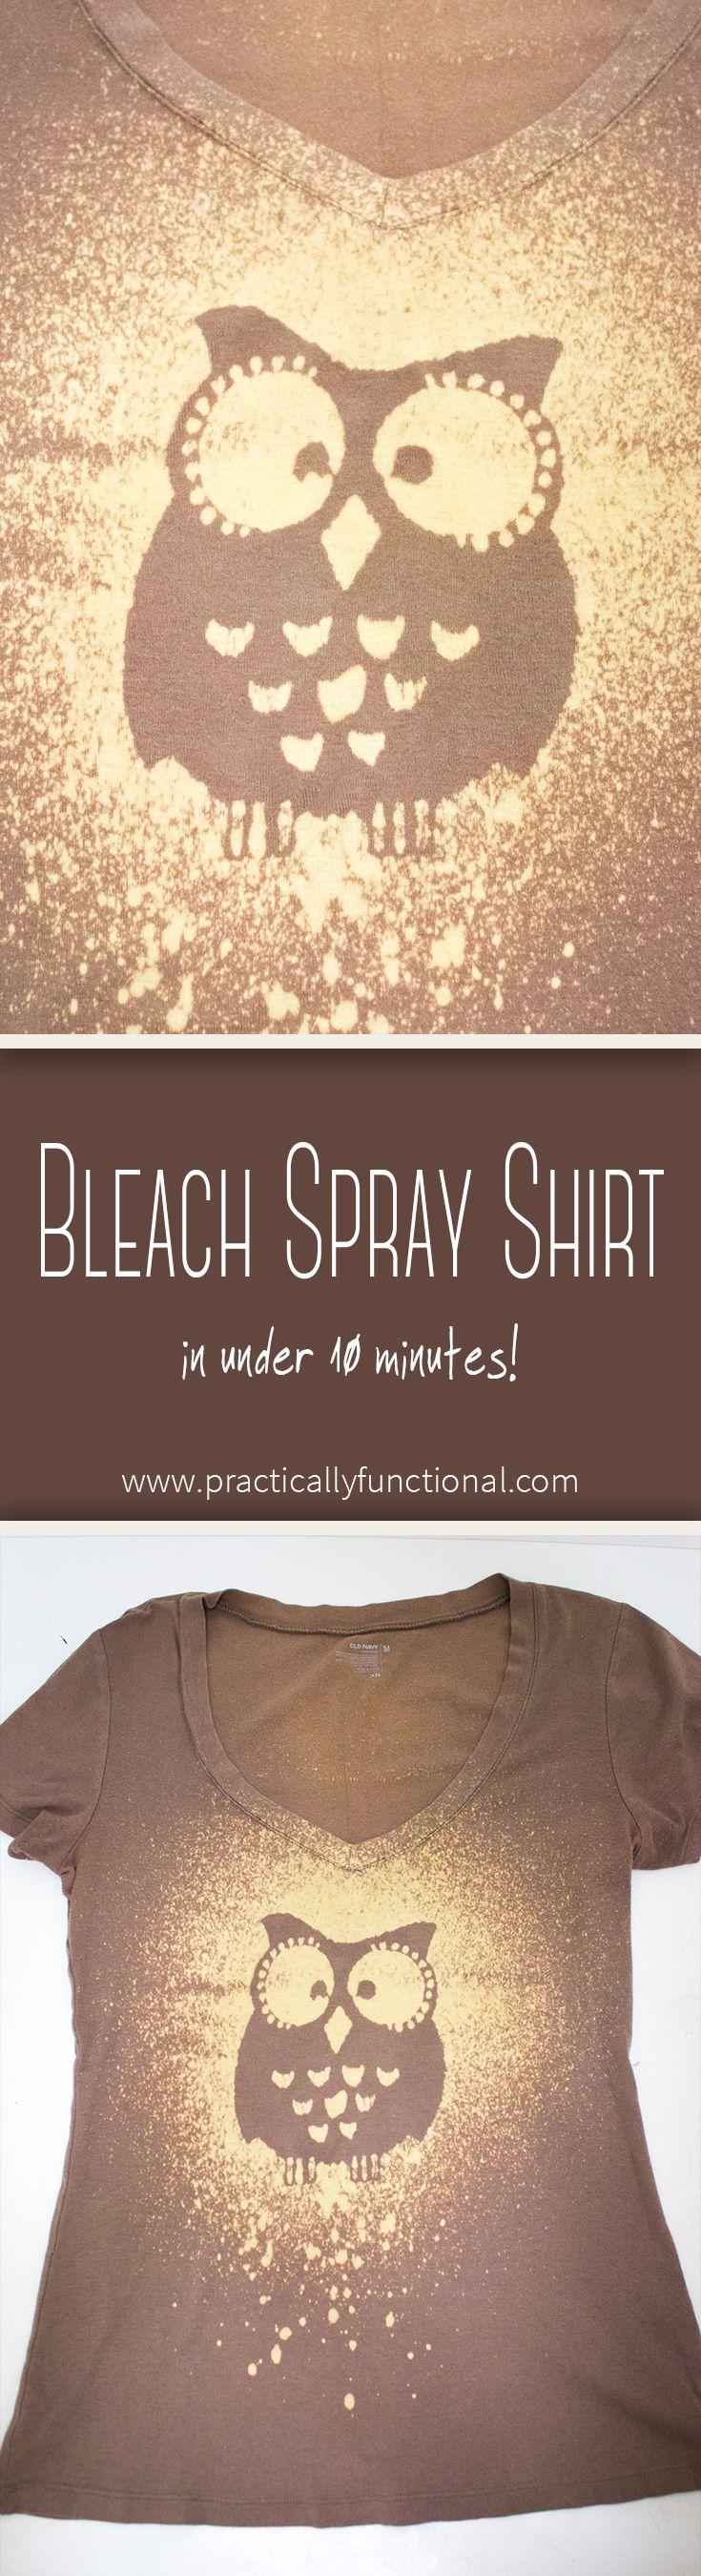 Make Your Own Bleach Spray Shirt In Just 10 Minutes Practically